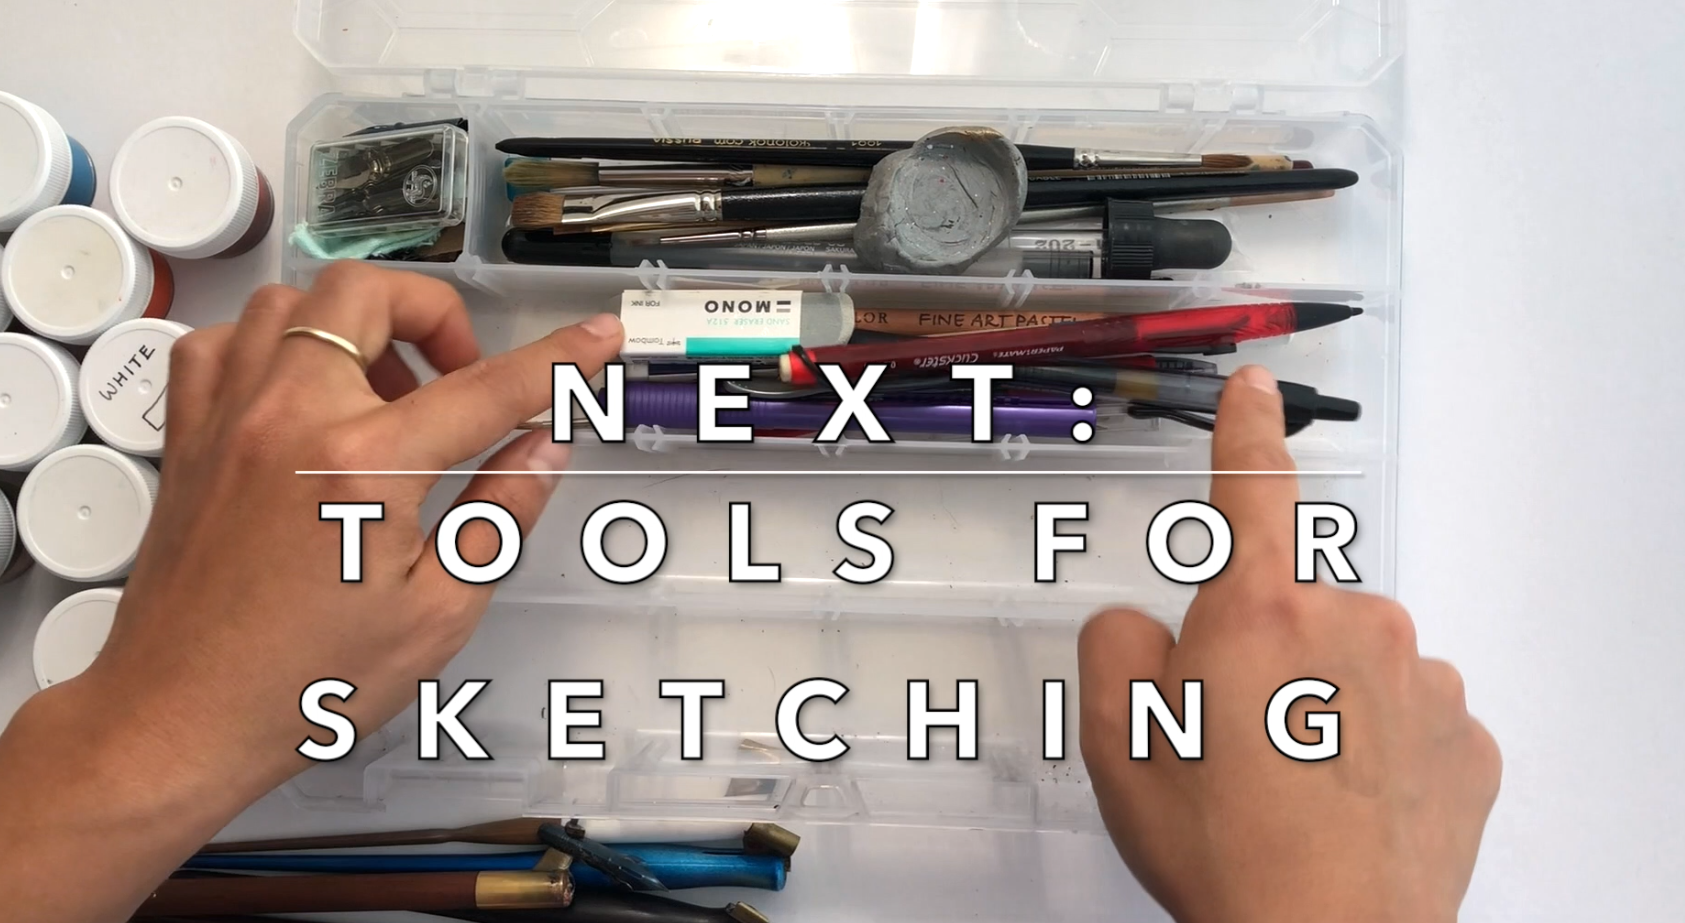 Tools for sketching before calligraphy